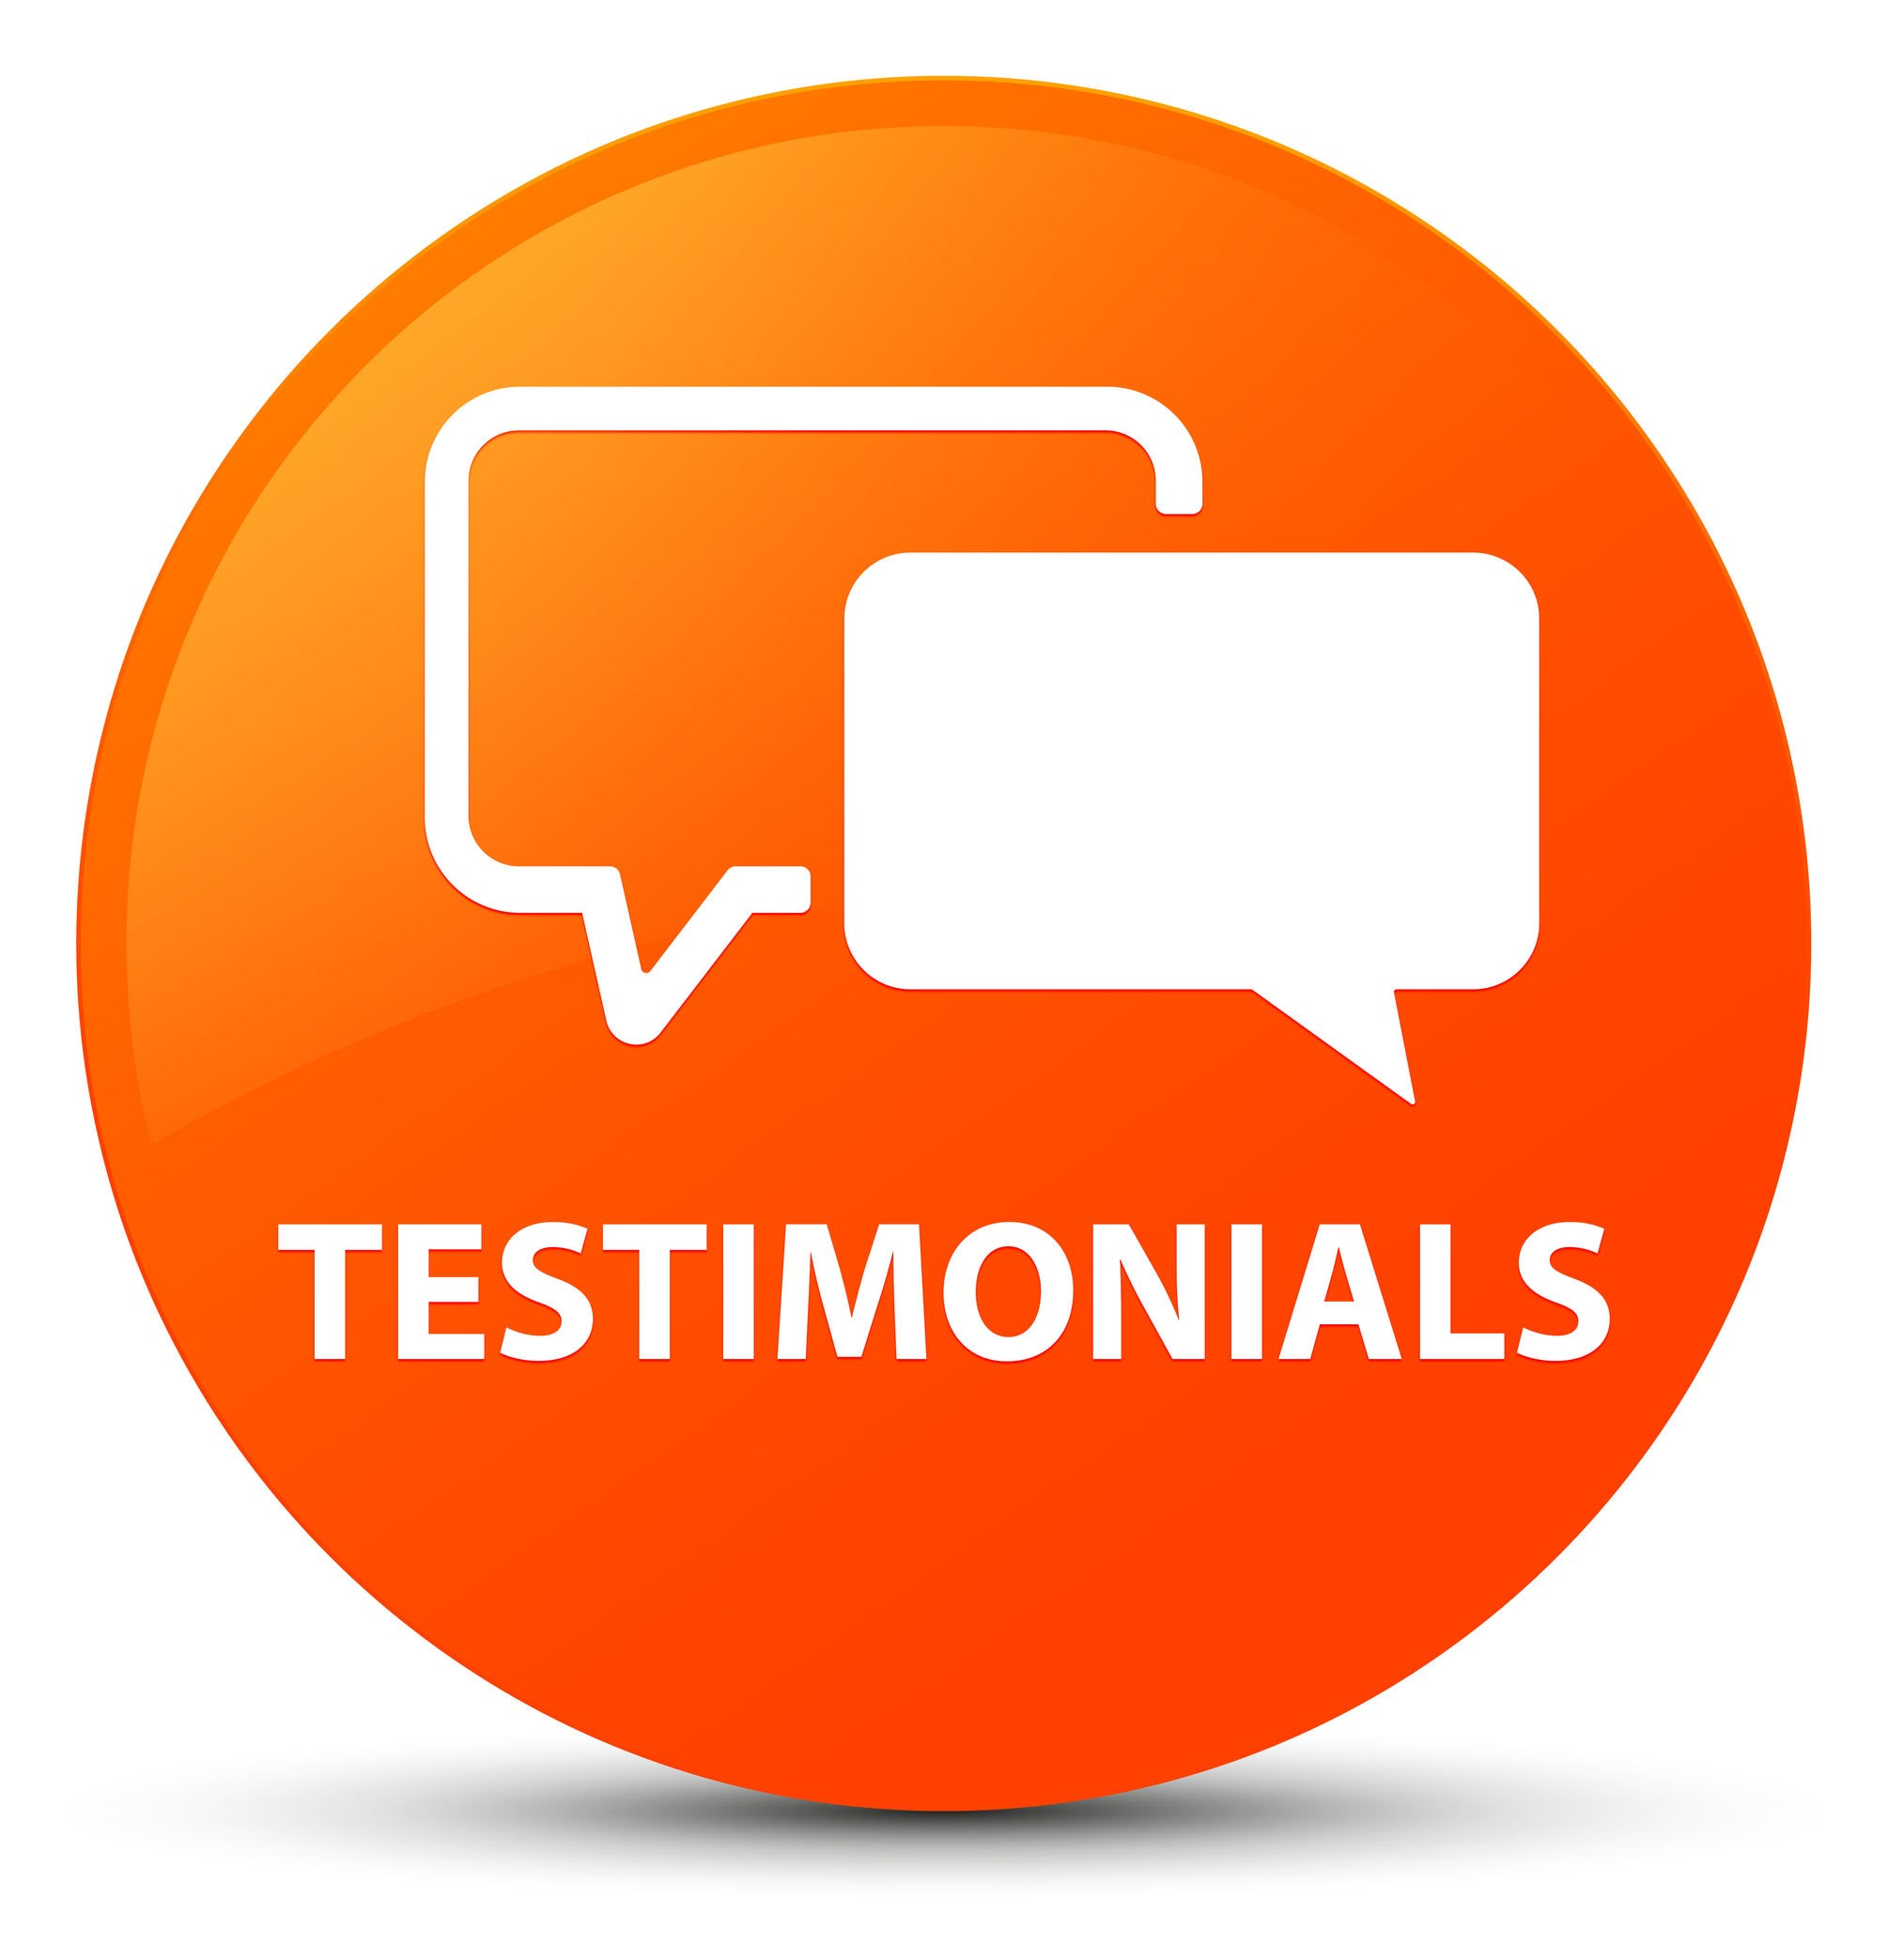 Testimonials - We can tell you how great we are, how much our video tutorials will help you, and how our videos will put a smile on your face, but we thought we'd let some of our viewers tell you for us. Our testimonials page is full of feedback from our YouTube viewers and subscribers. Take a look and see what others like yourself are saying about our tutorials.Customer Testimonials ›